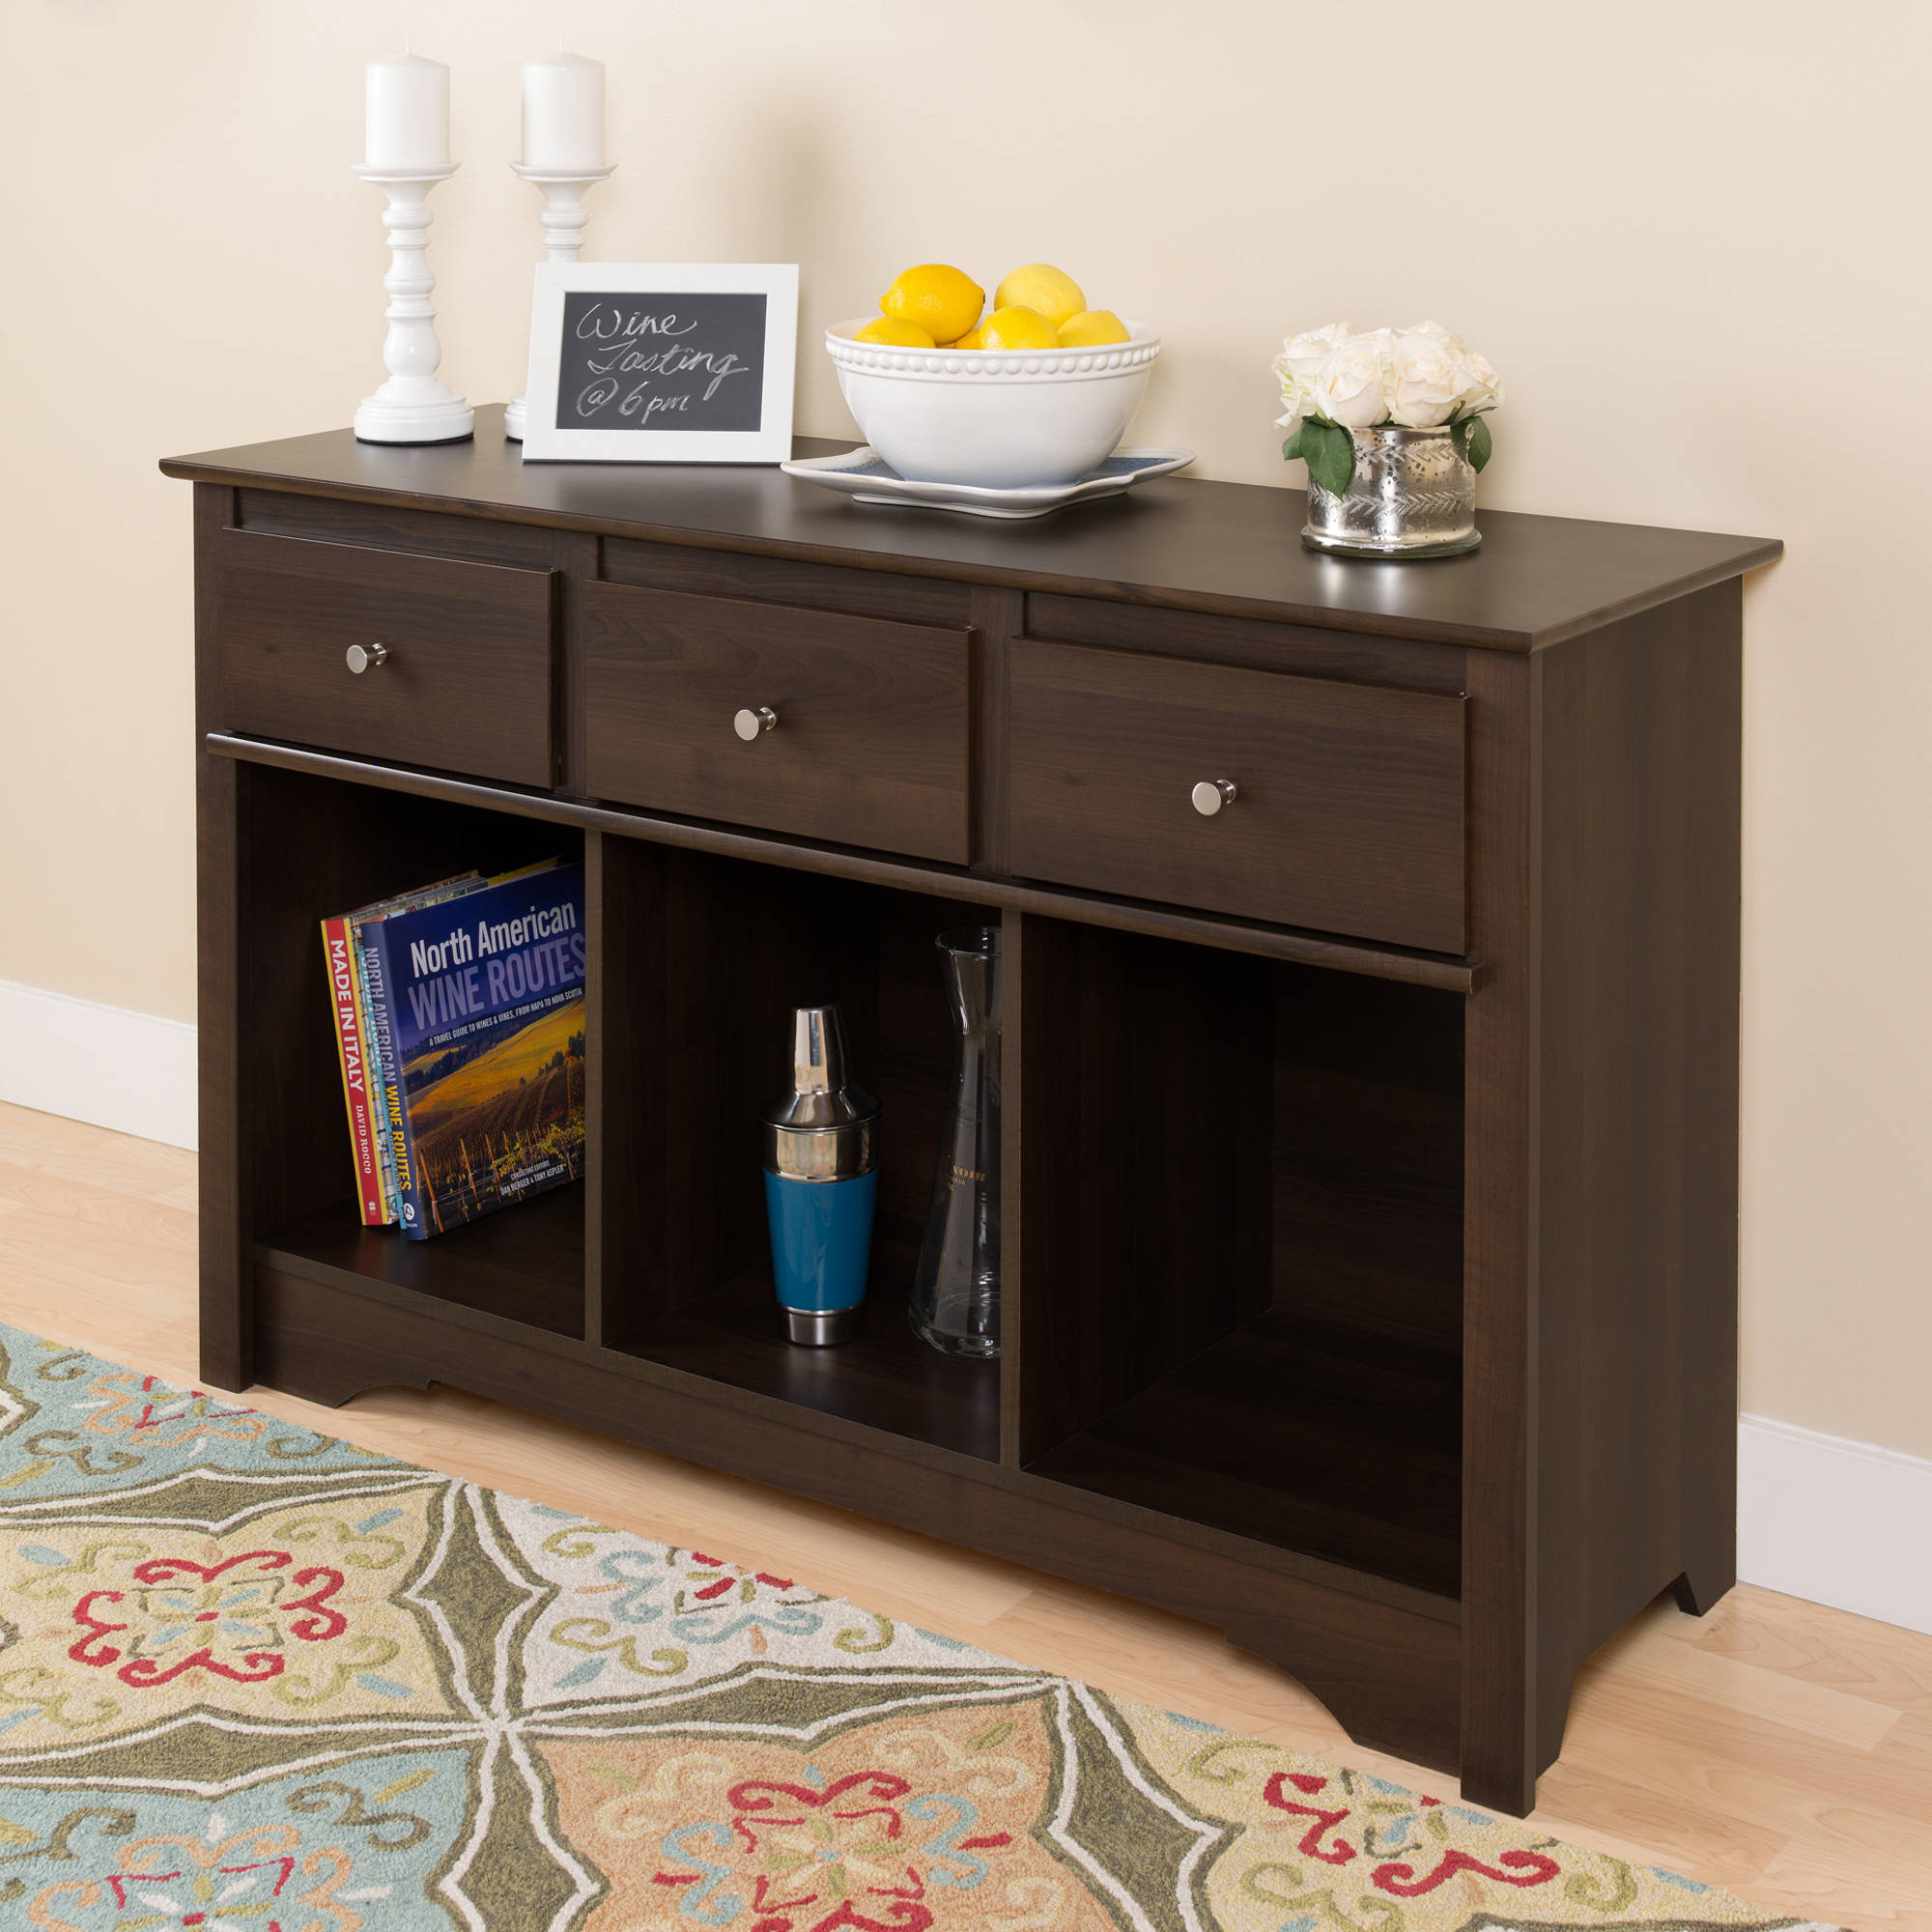 Prepac 3 Drawer Console Table in Espresso Finish by Prepac Manufacturing Ltd.